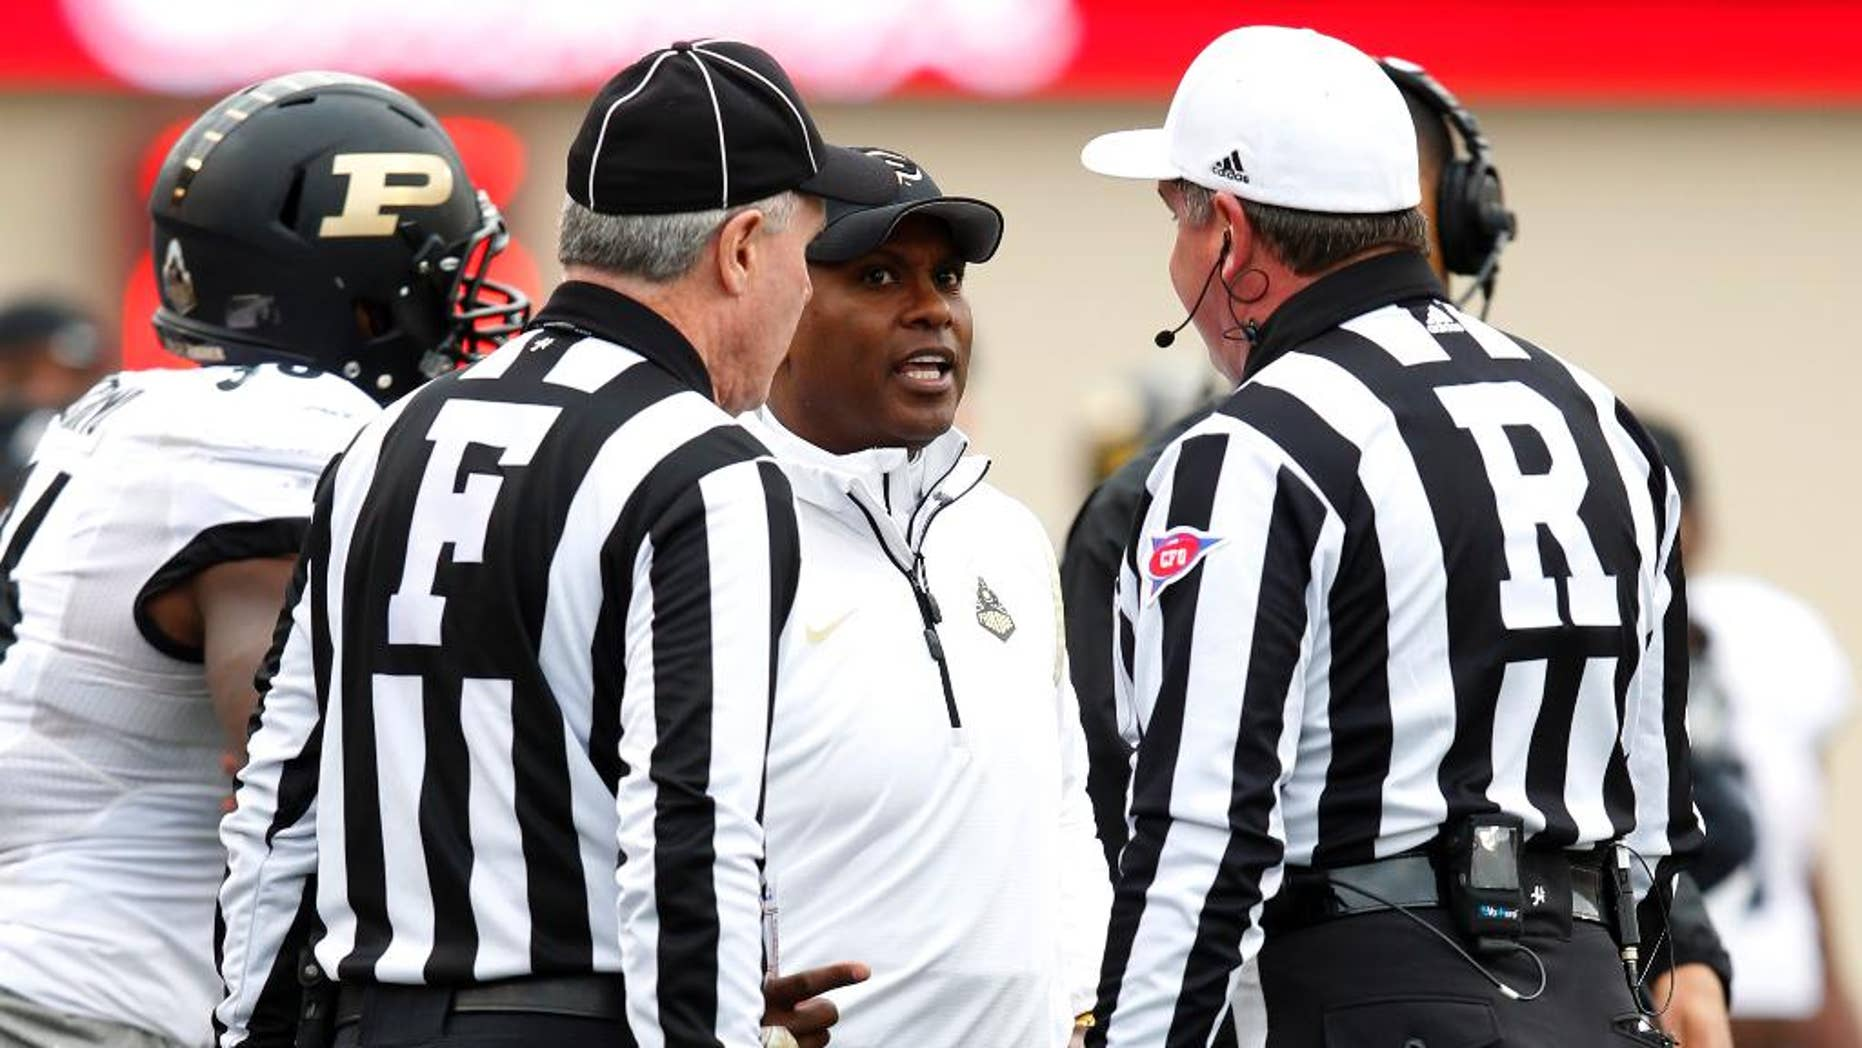 Purdue head coach Darrell Hazell reacts to a call by the officials during the second half of play against Indiana in an NCAA college football game at Memorial Stadium in Bloomington, Ind., Saturday, Nov. 29, 2014. (AP Photo/John Sommers II)